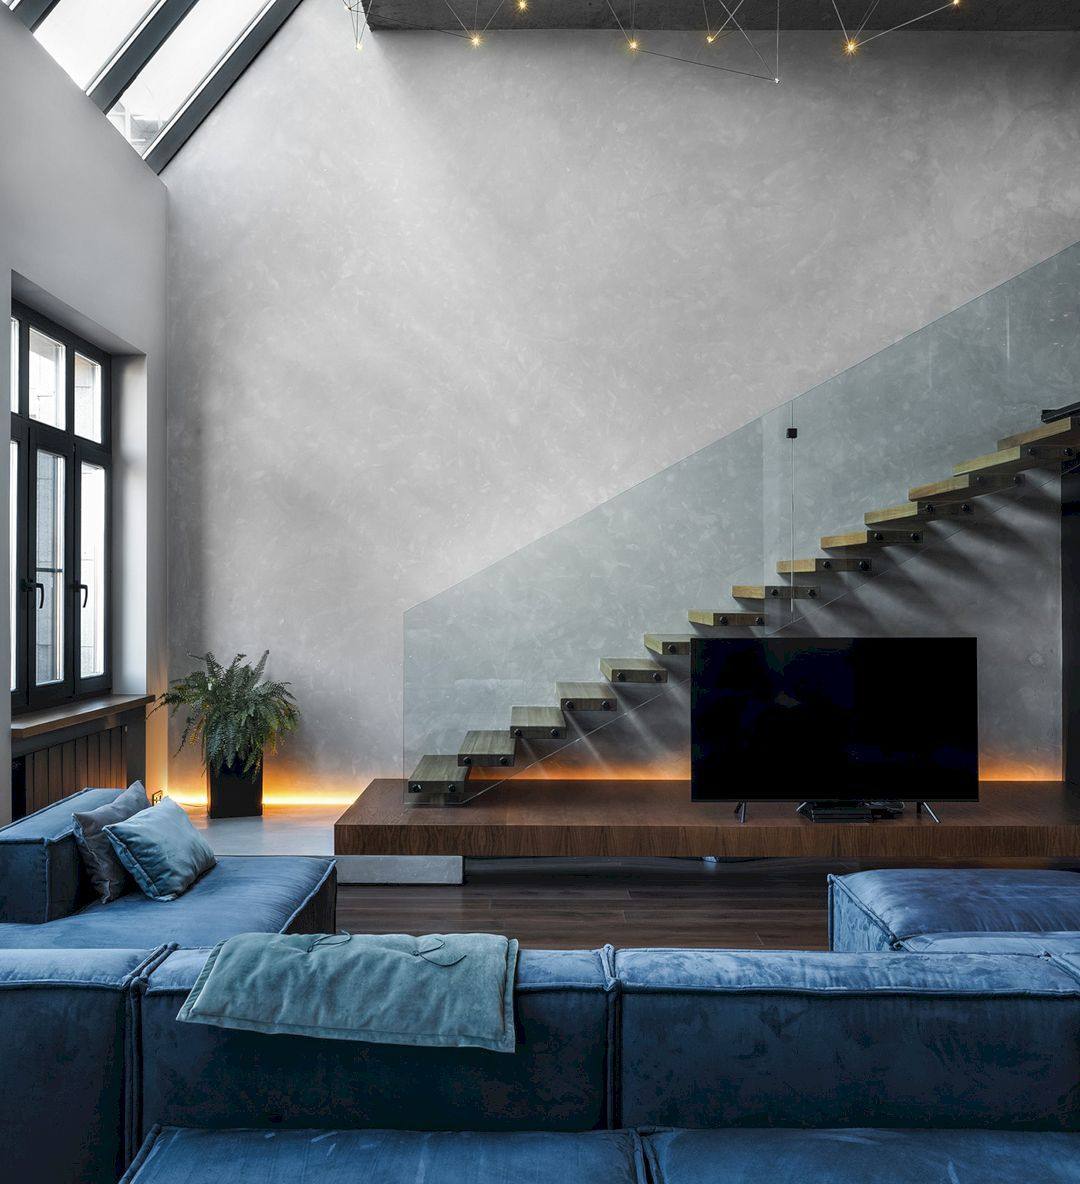 apartment warm atmosphere of modern with elegant interior design also best luxury group images in living room rh pinterest